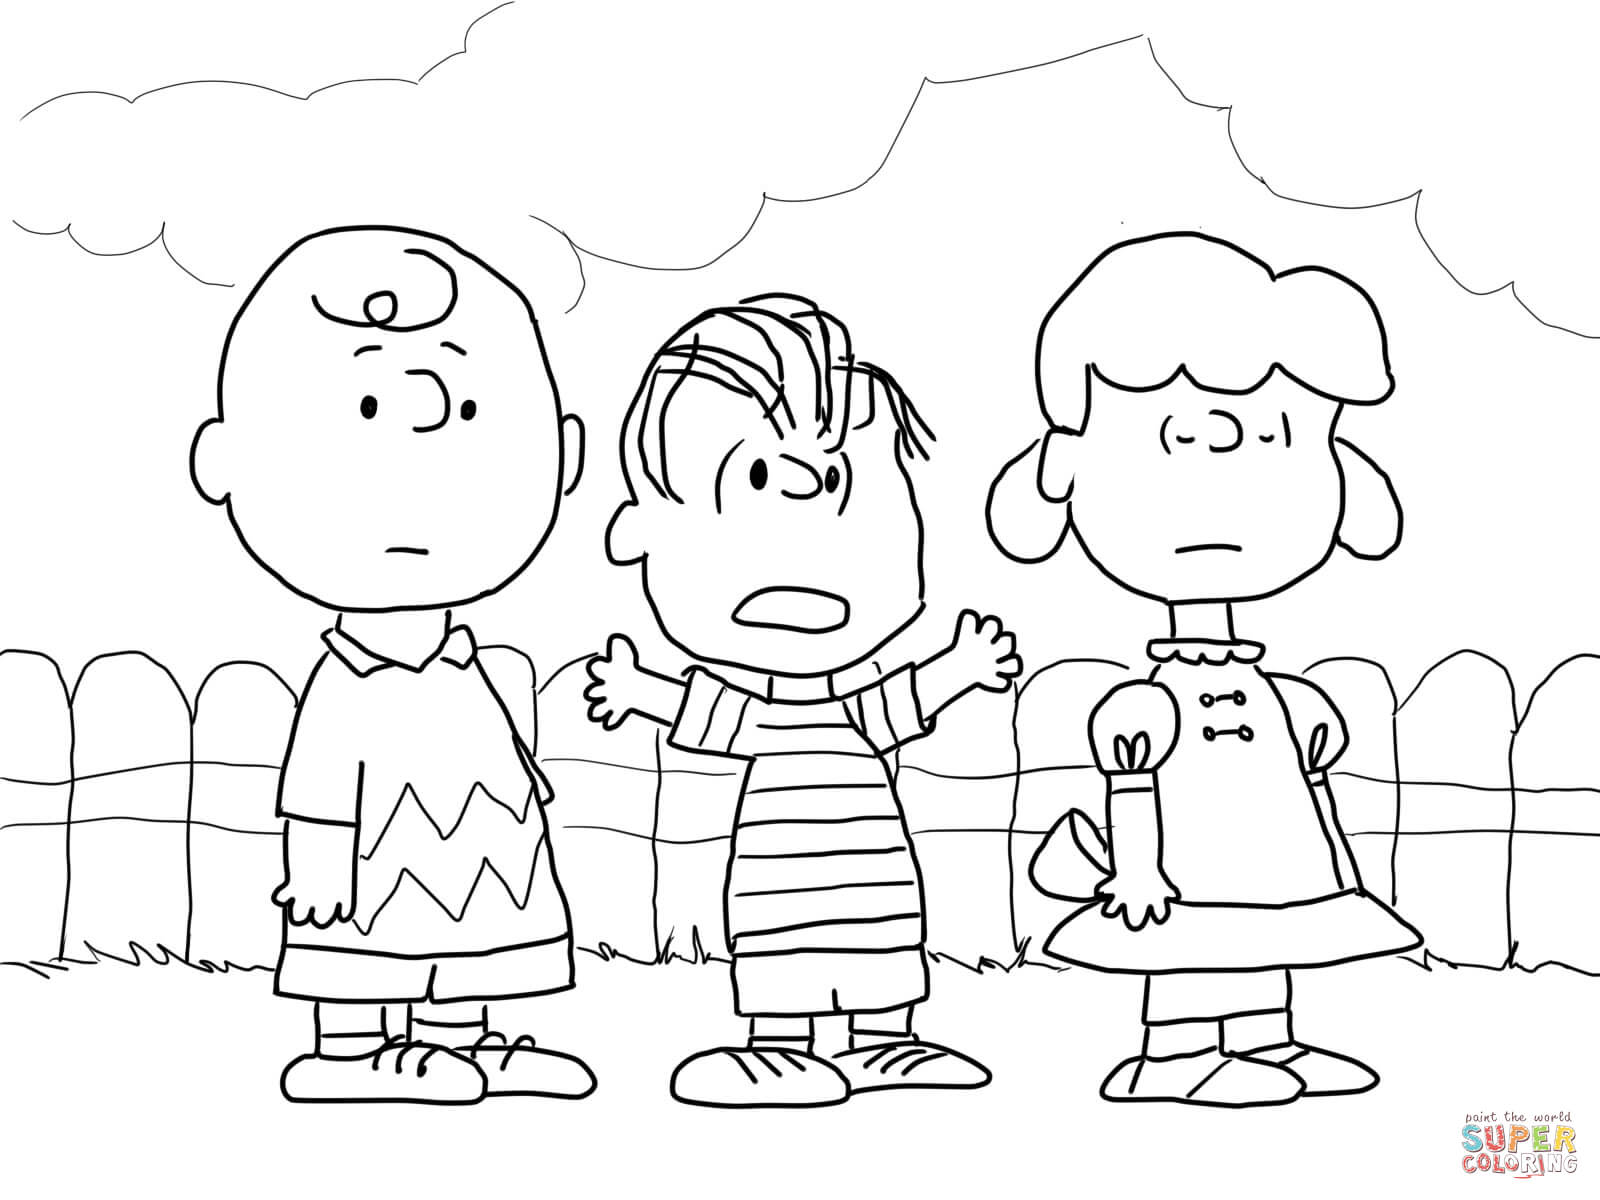 peanuts characters coloring pages 17 best images about peanuts svg files on pinterest characters pages peanuts coloring